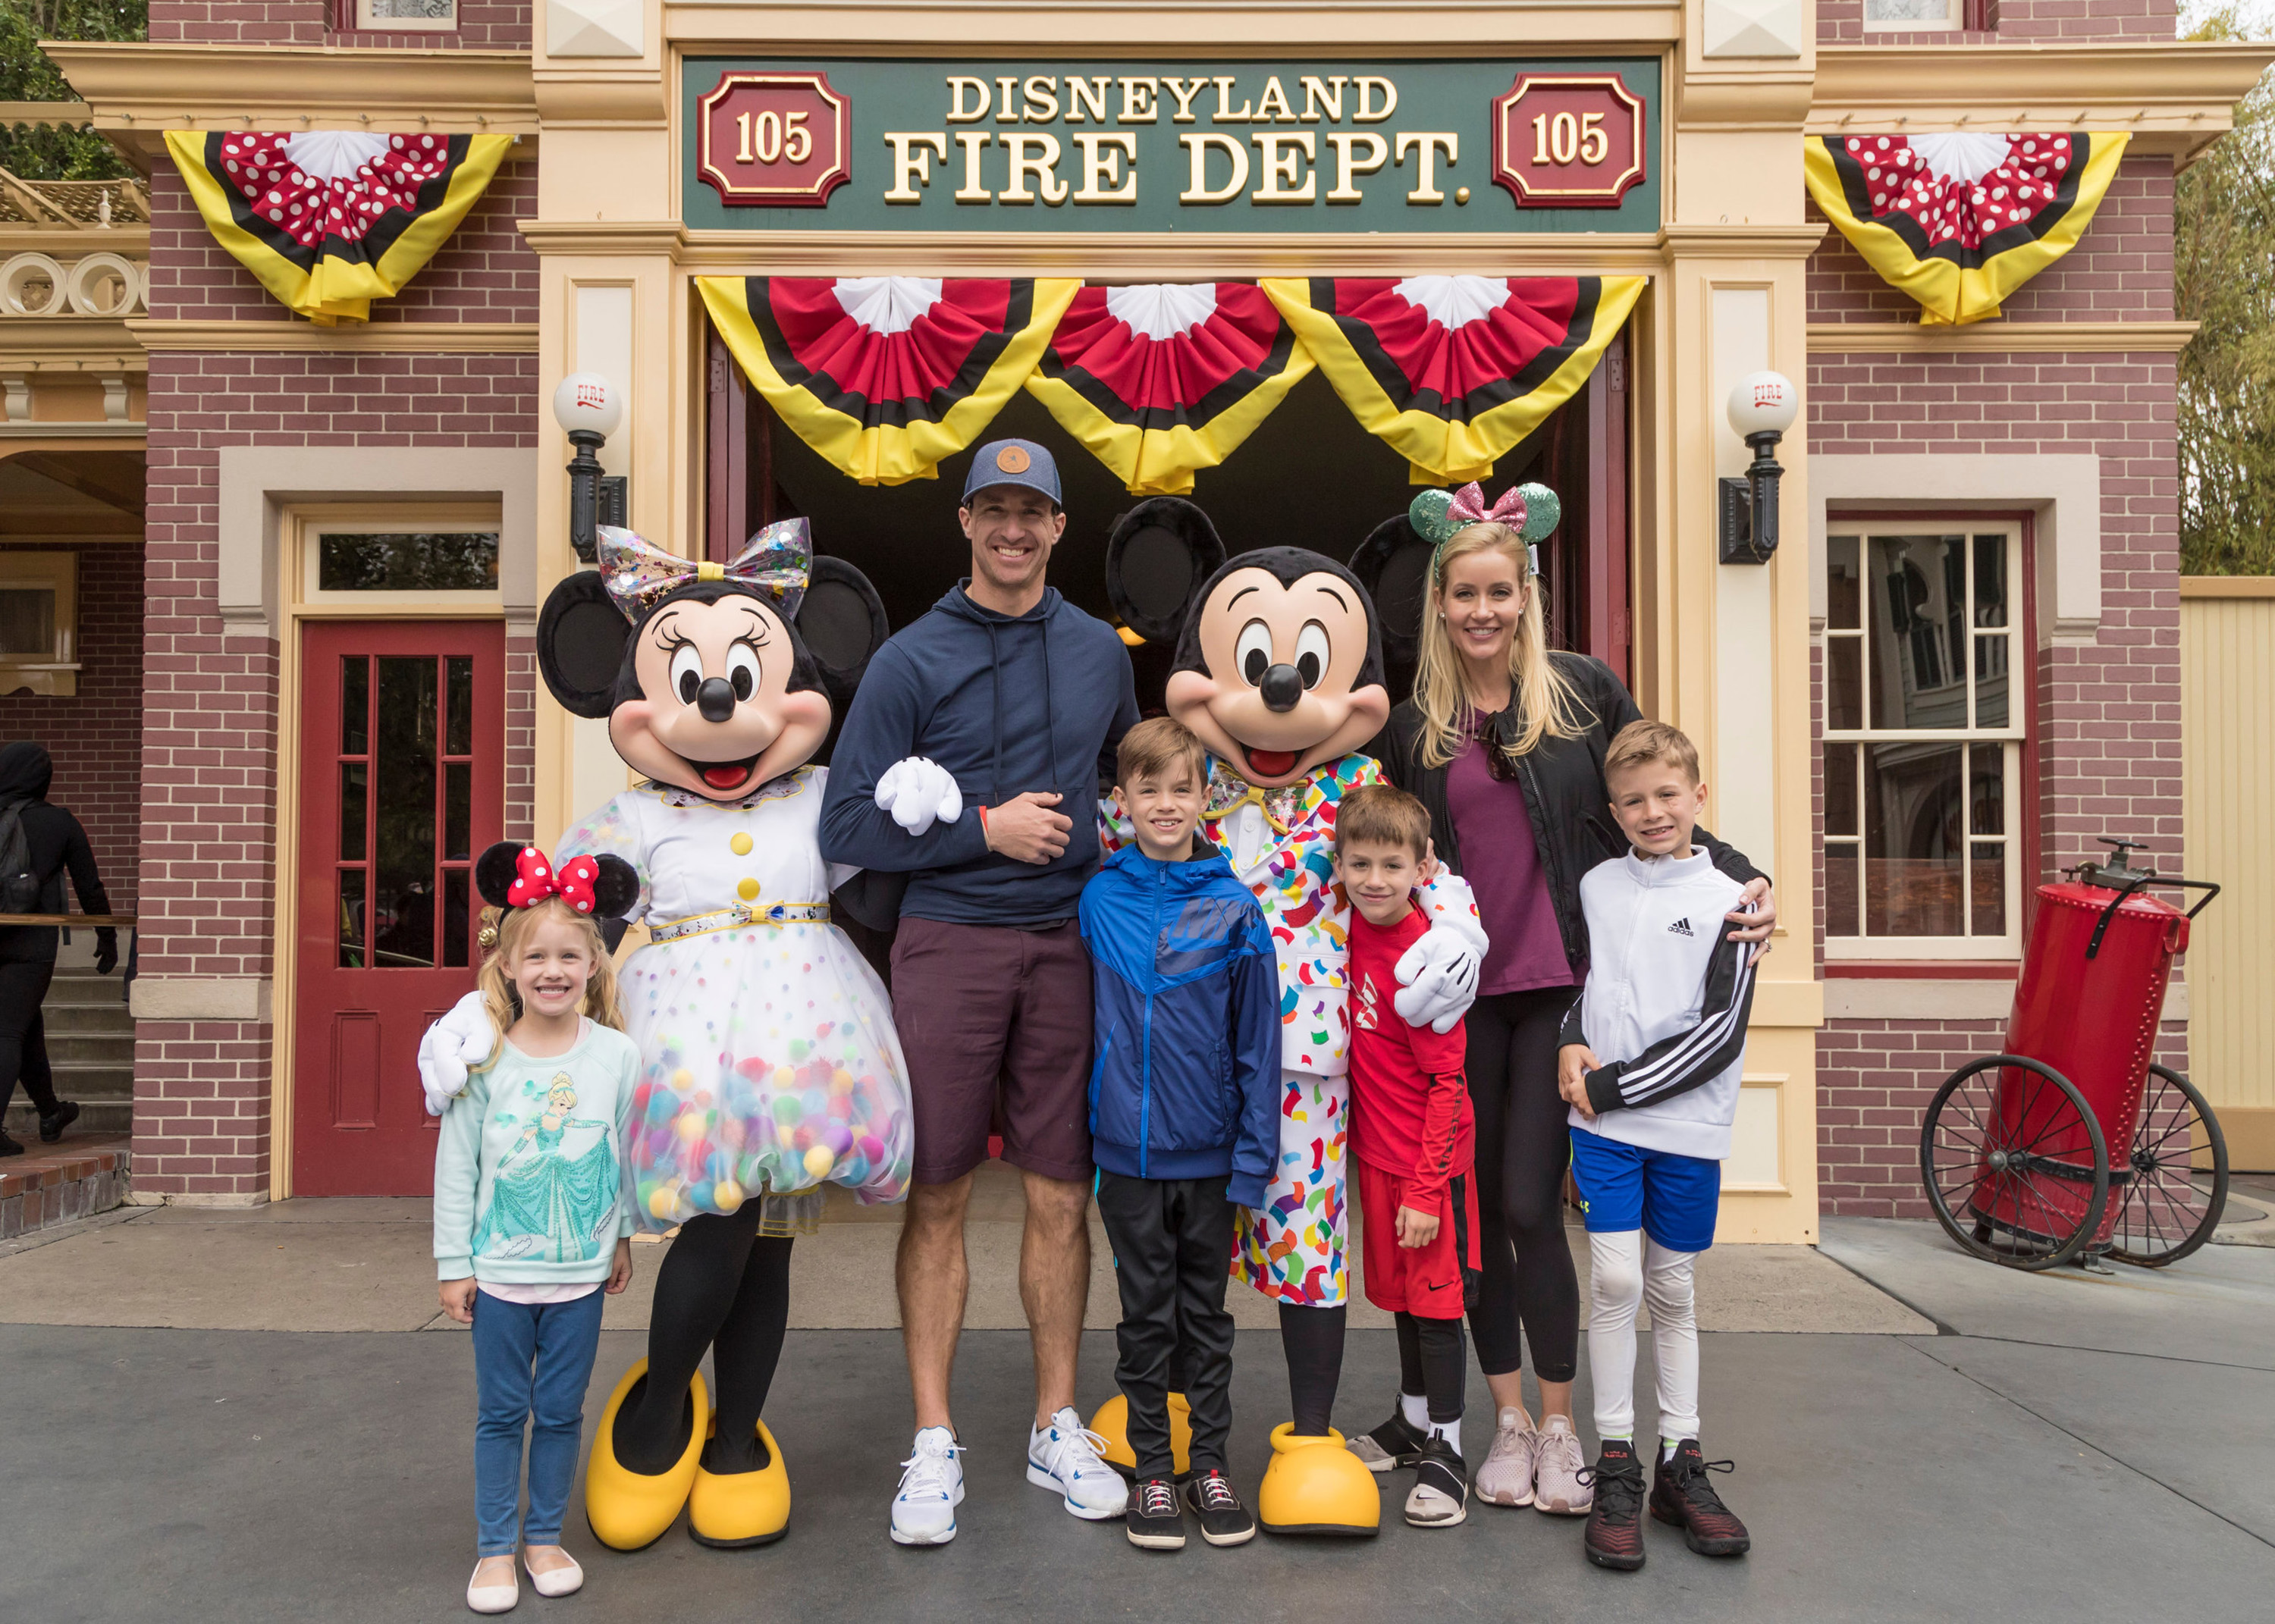 ANAHEIM, CA - MARCH 11: In this handout photo provided by Disneyland Resort, Drew Brees, quarterback for the New Orleans Saints, his wife, Brittany Brees, and their four children (l-r) Rylen, 5, Bowen, 9, Callen, 7, and Baylen, 10, pose with Mickey Mouse and Minnie Mouse while vacationing at Disneyland Park on March 11, 2019 in Anaheim, California. Mickey and Minnie sported their outfits for Get Your Ears On A Mickey and Minnie Celebration taking place at Disneyland Resort. (Photo by Joshua Sudock/Disneyland Resort via Getty Images)